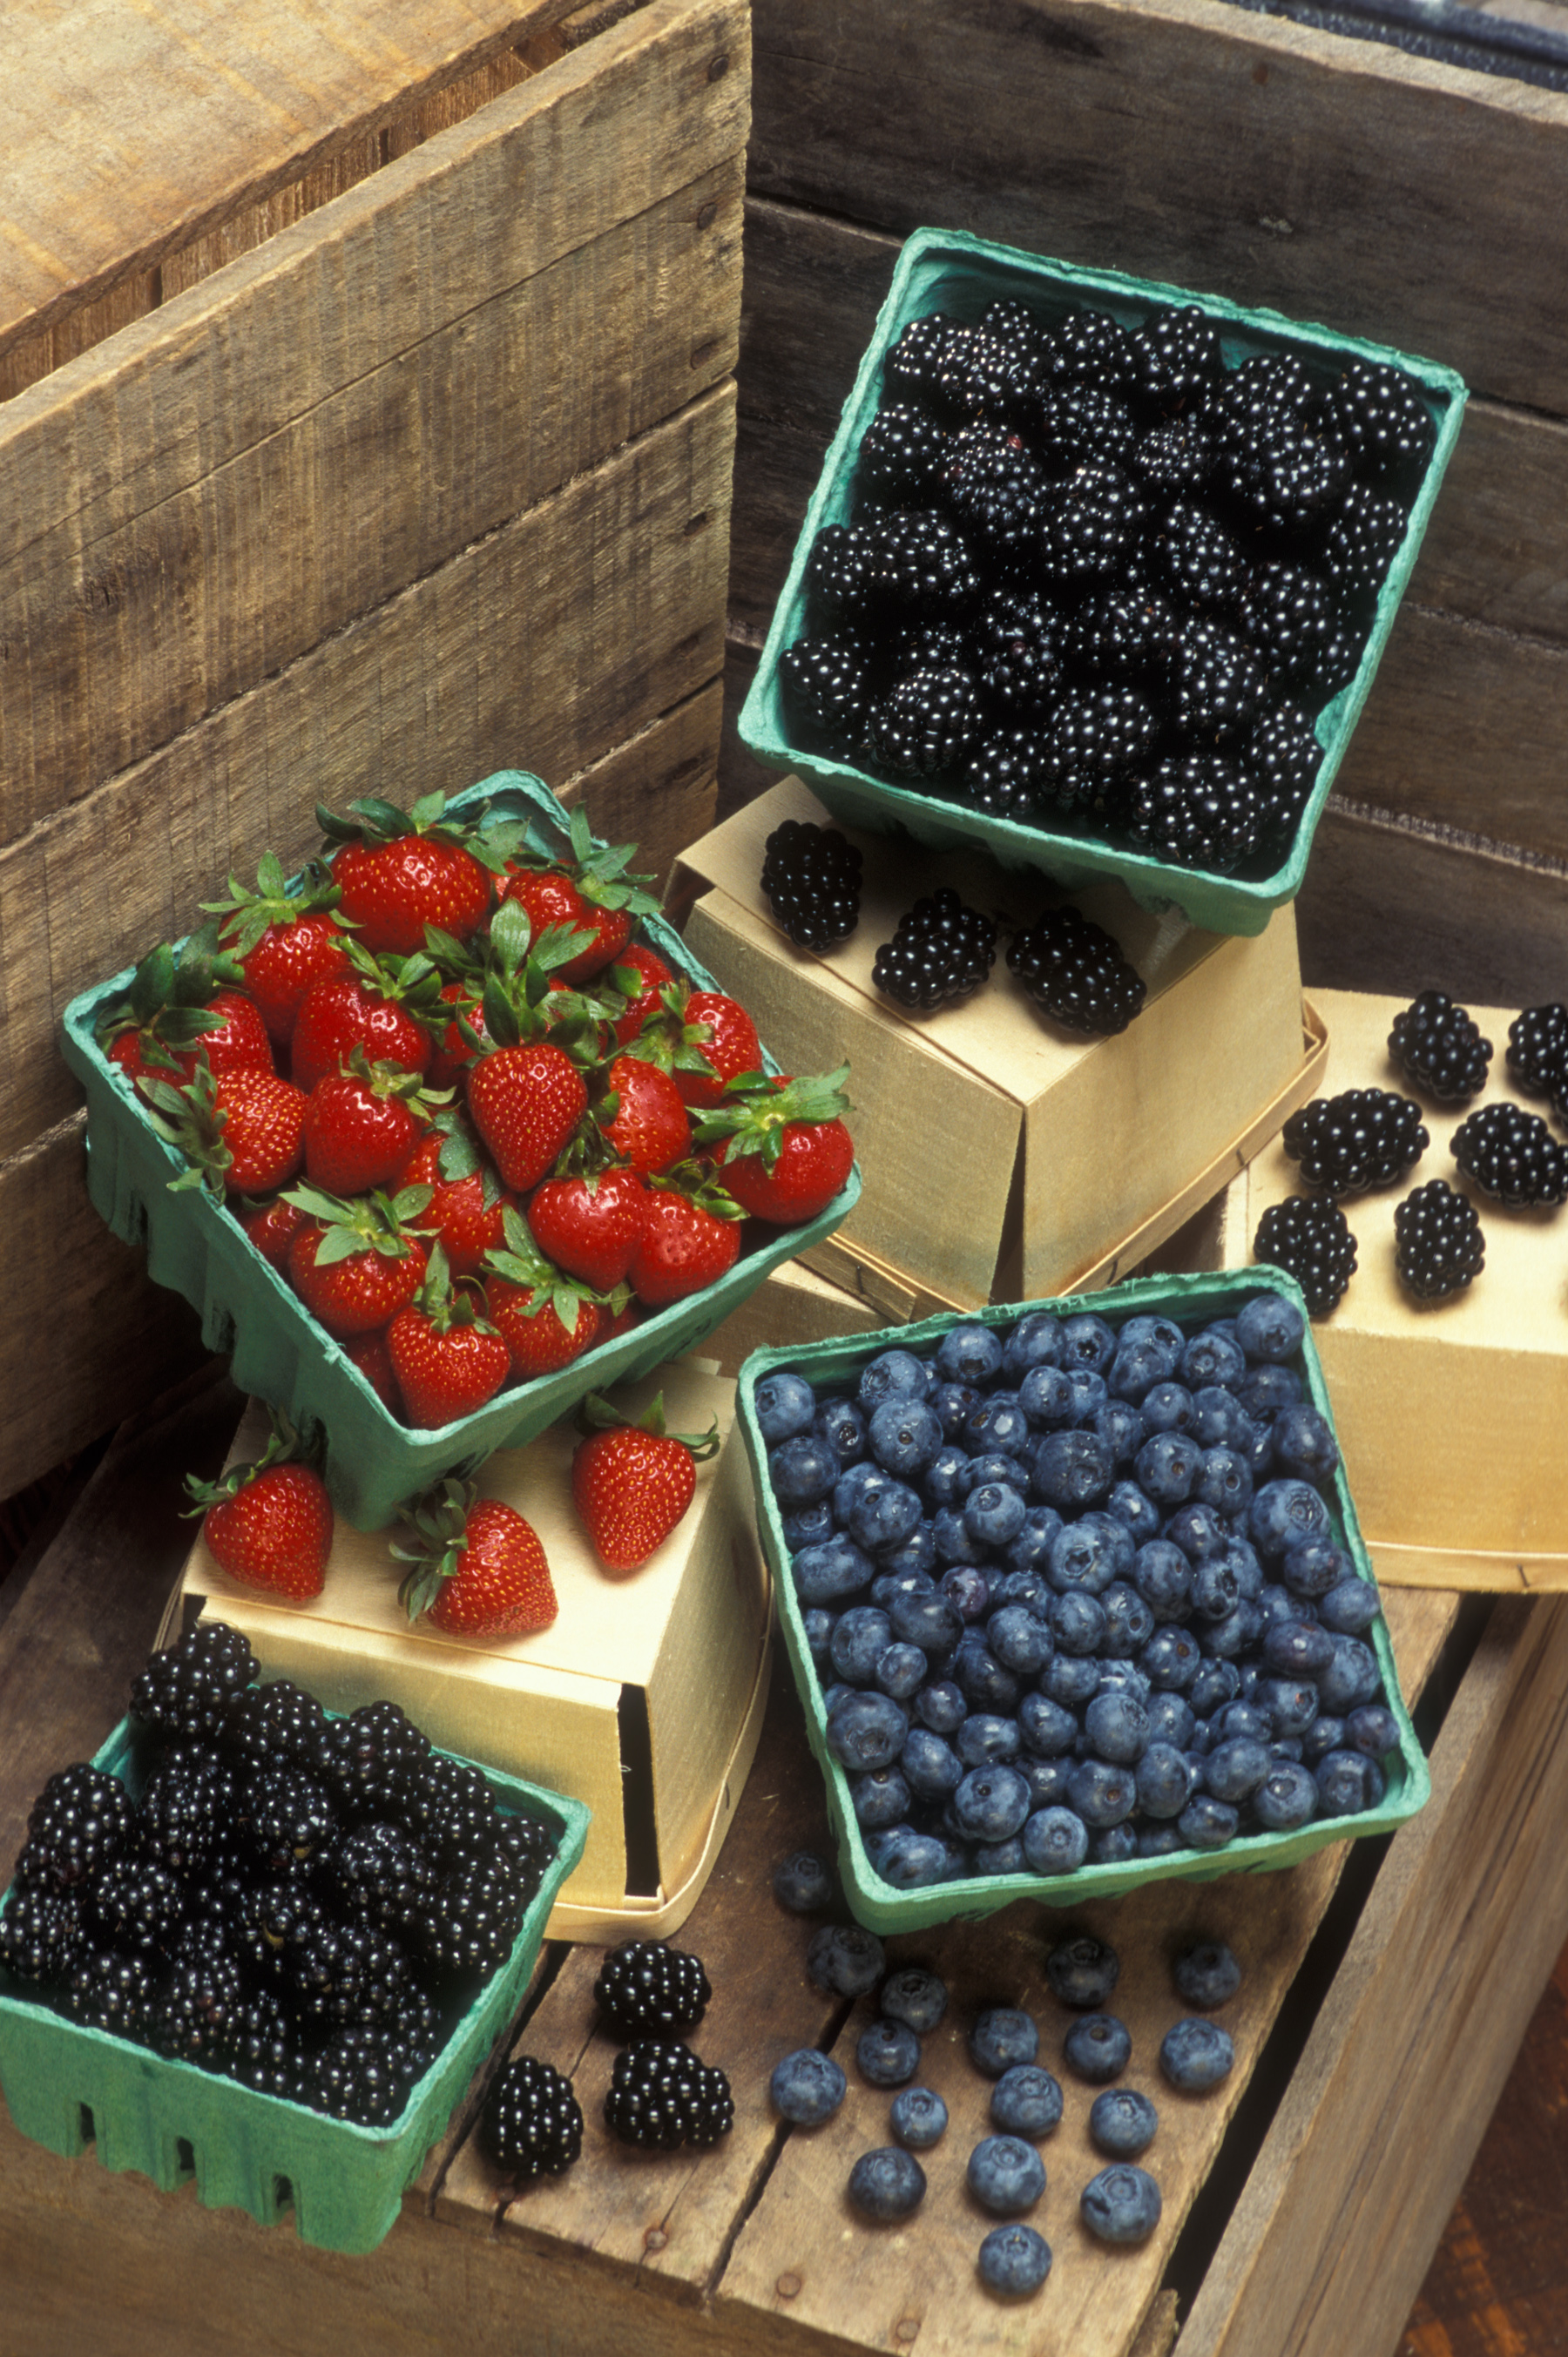 picture of blackberries, blueberries, and strawberries